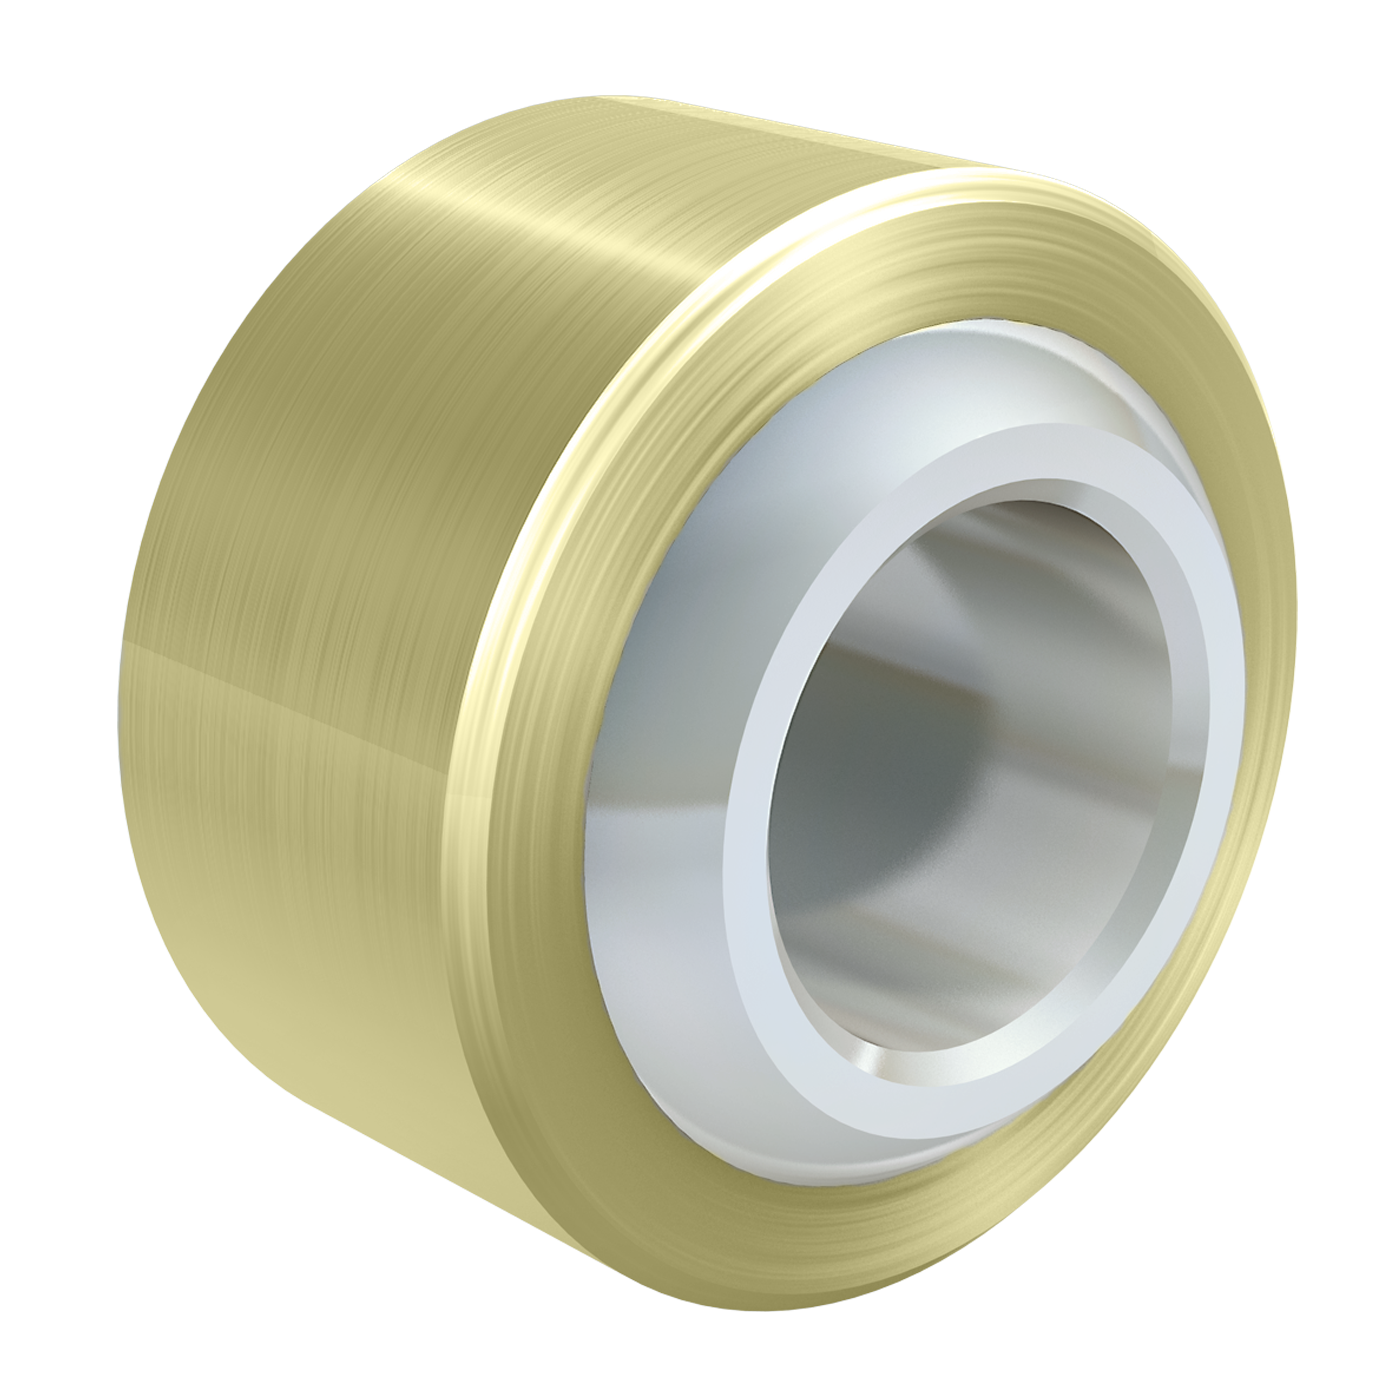 Pivoting bearings DIN ISO 12240-1 (DIN 648) K series high performance version without outer ring